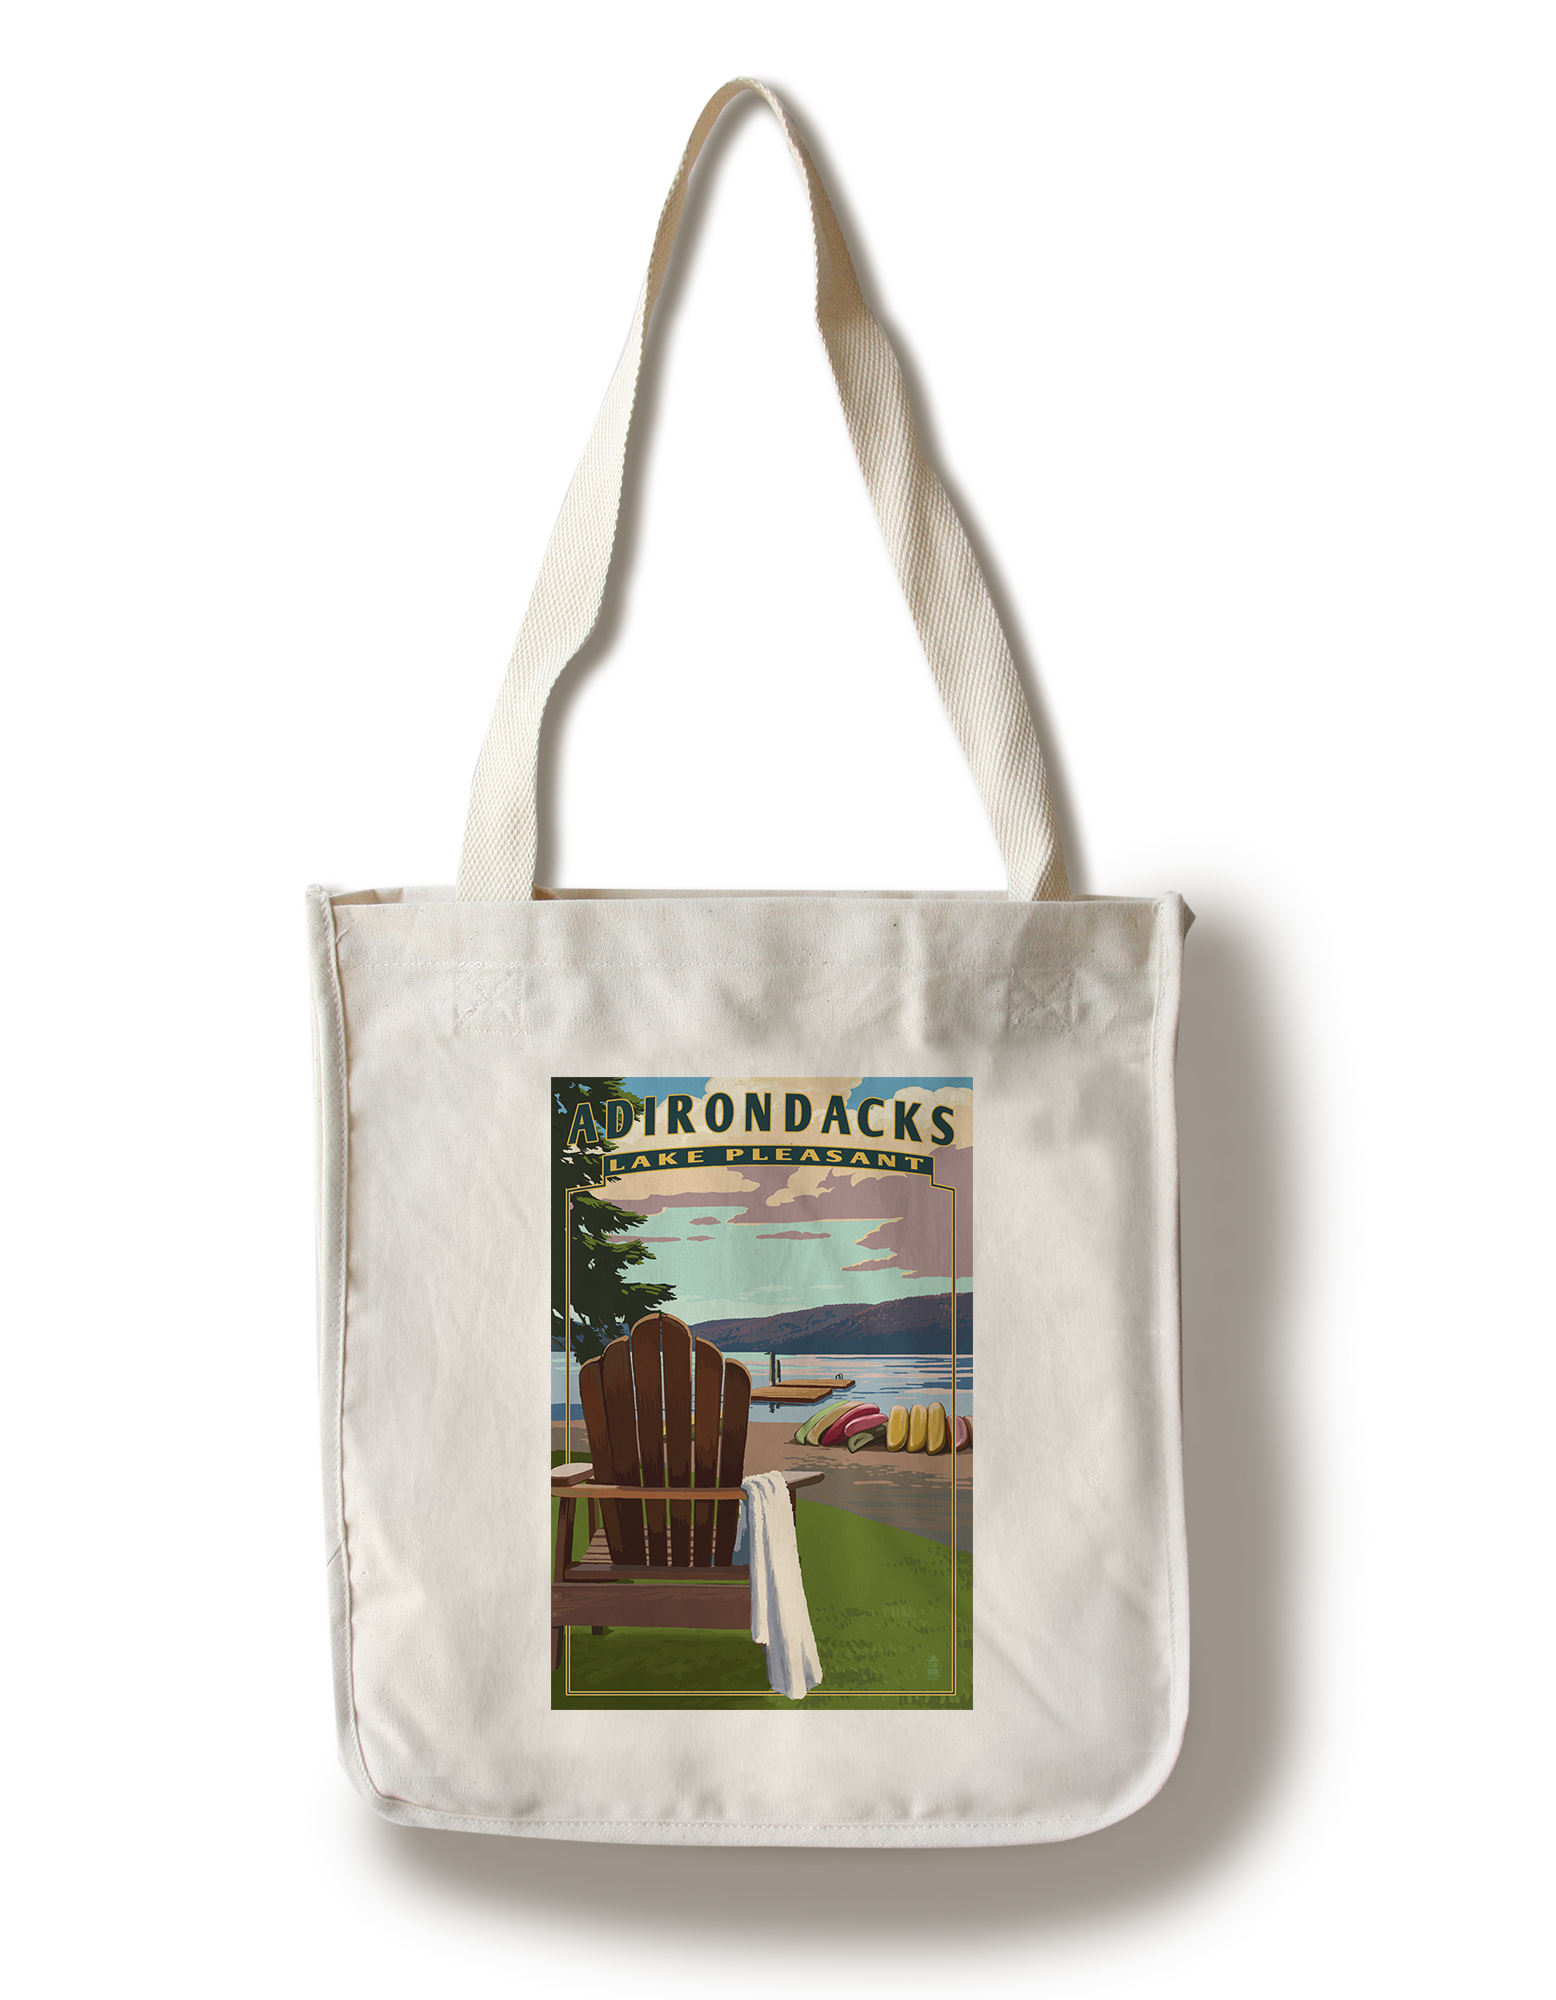 Adirondack Mountains, New York Lake Pleasant Adirondack Chair Lantern Press Poster (100% Cotton Tote Bag Reusable) by Lantern Press